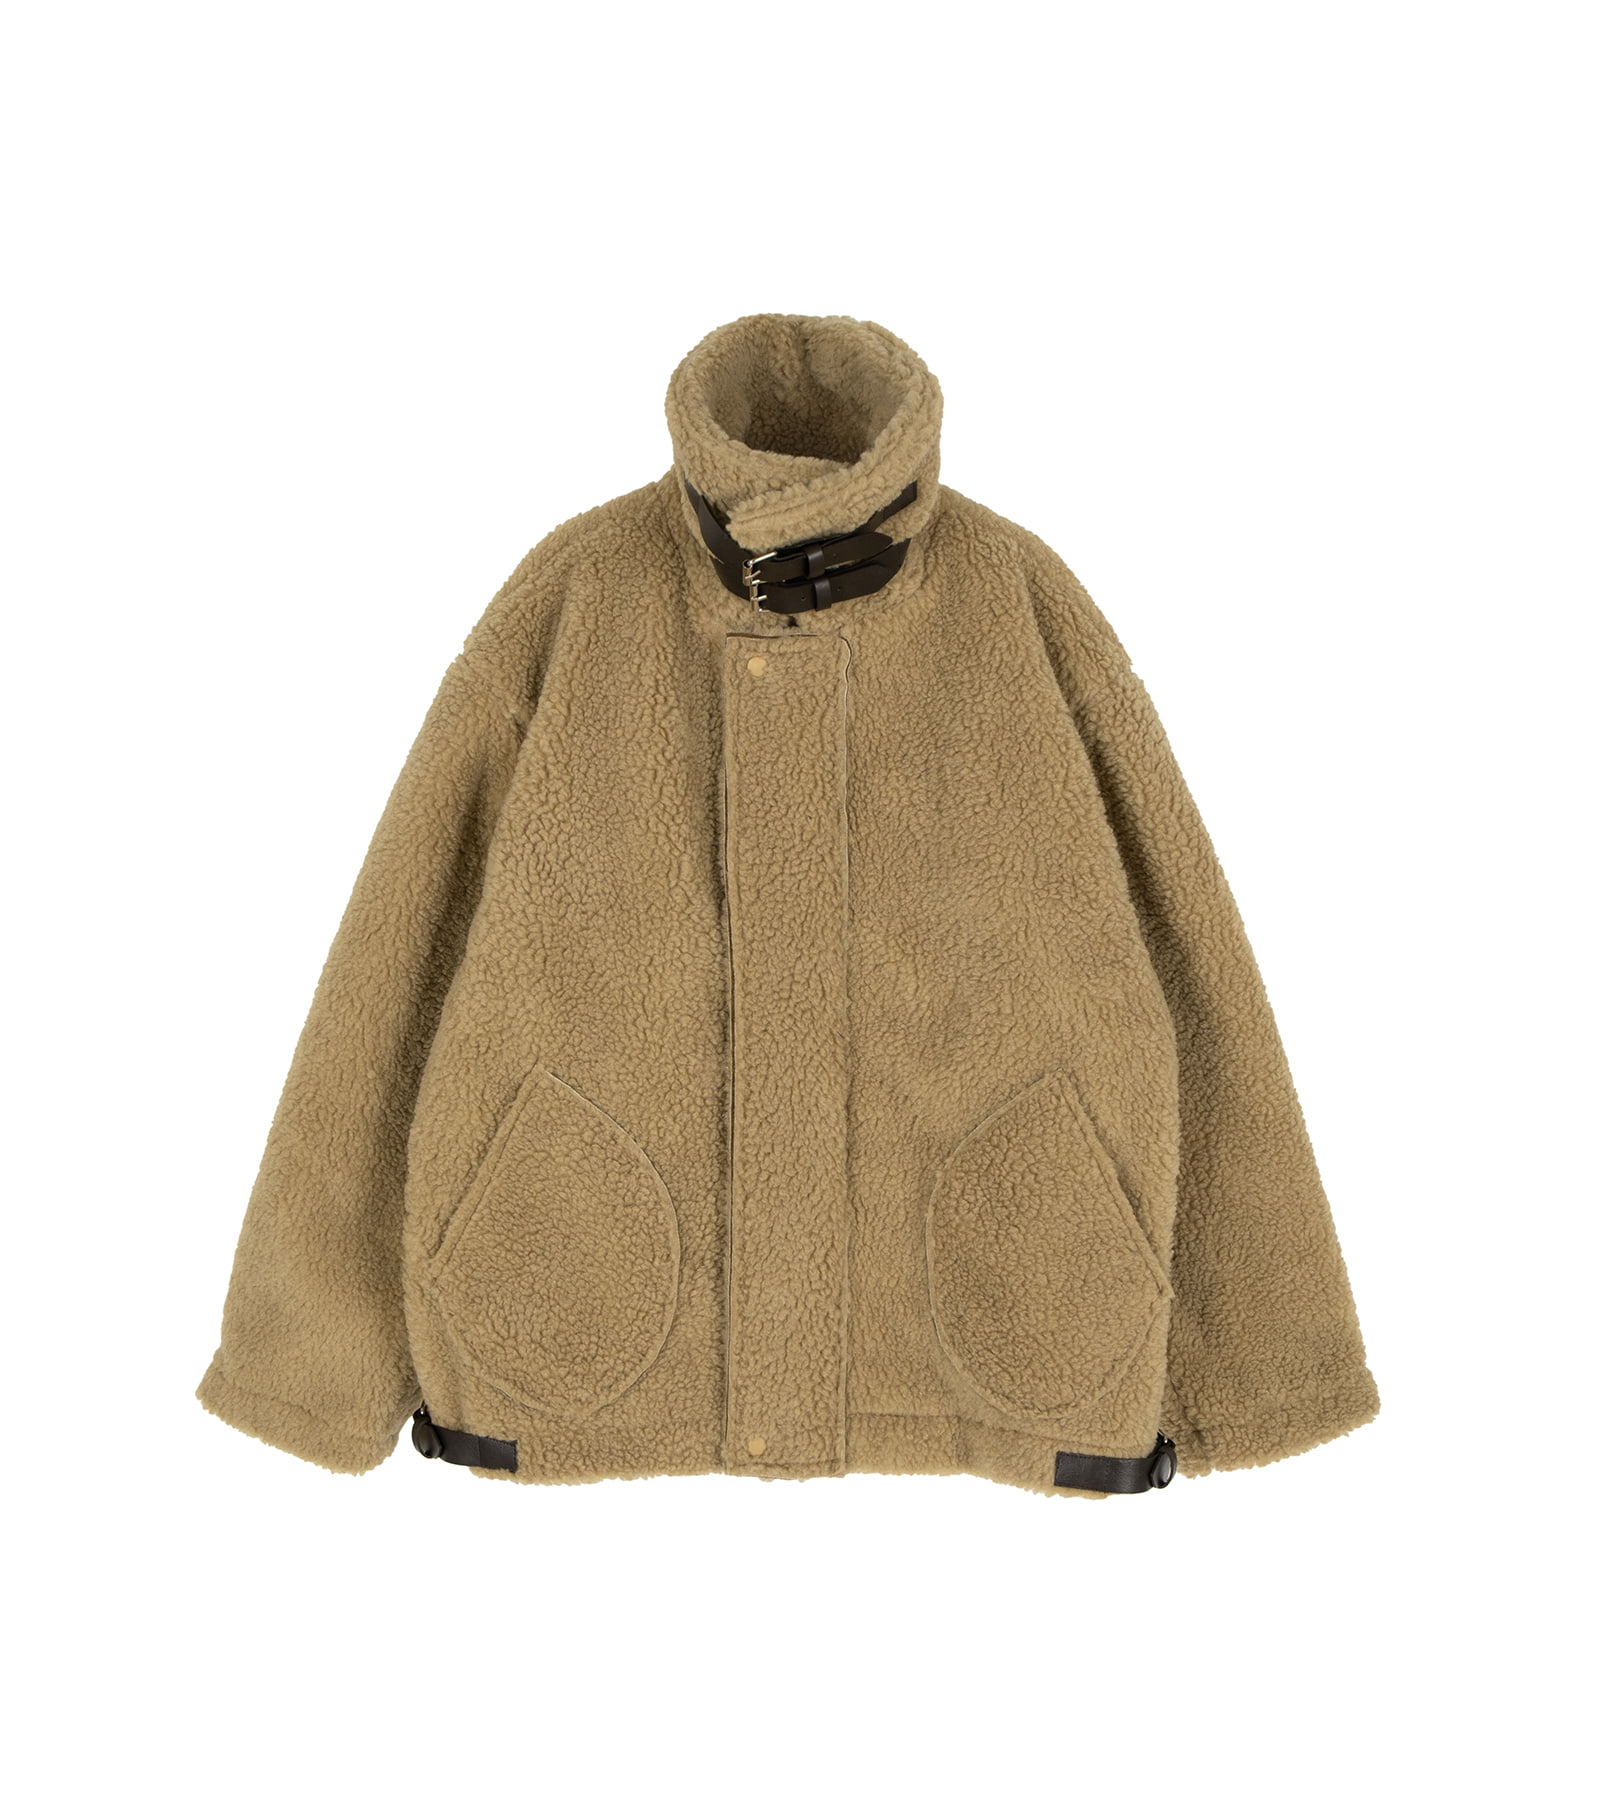 Your mousse shearling coat